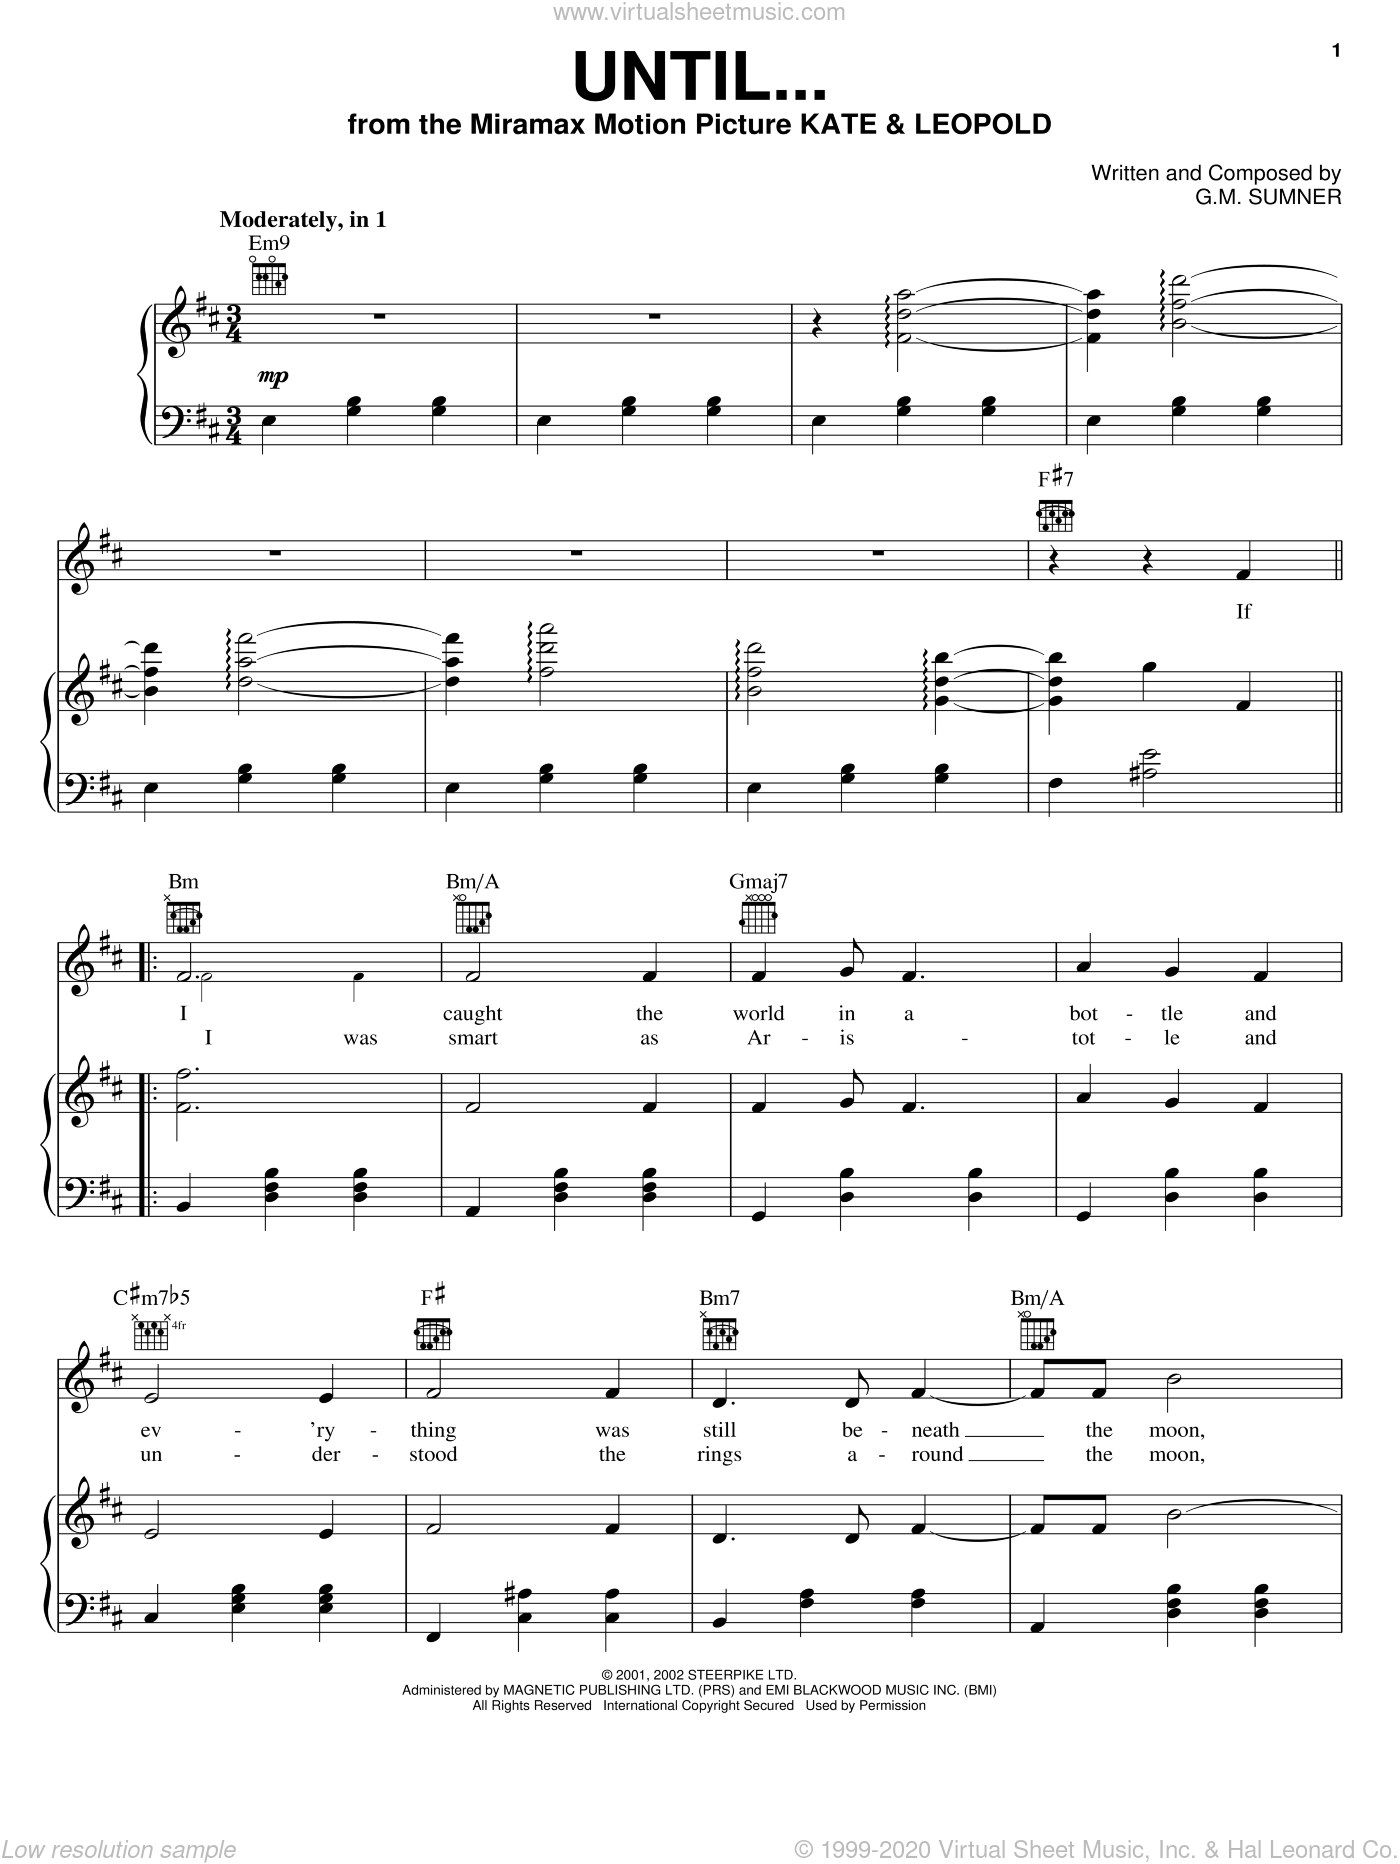 Until... sheet music for voice, piano or guitar by G.M. Sumner